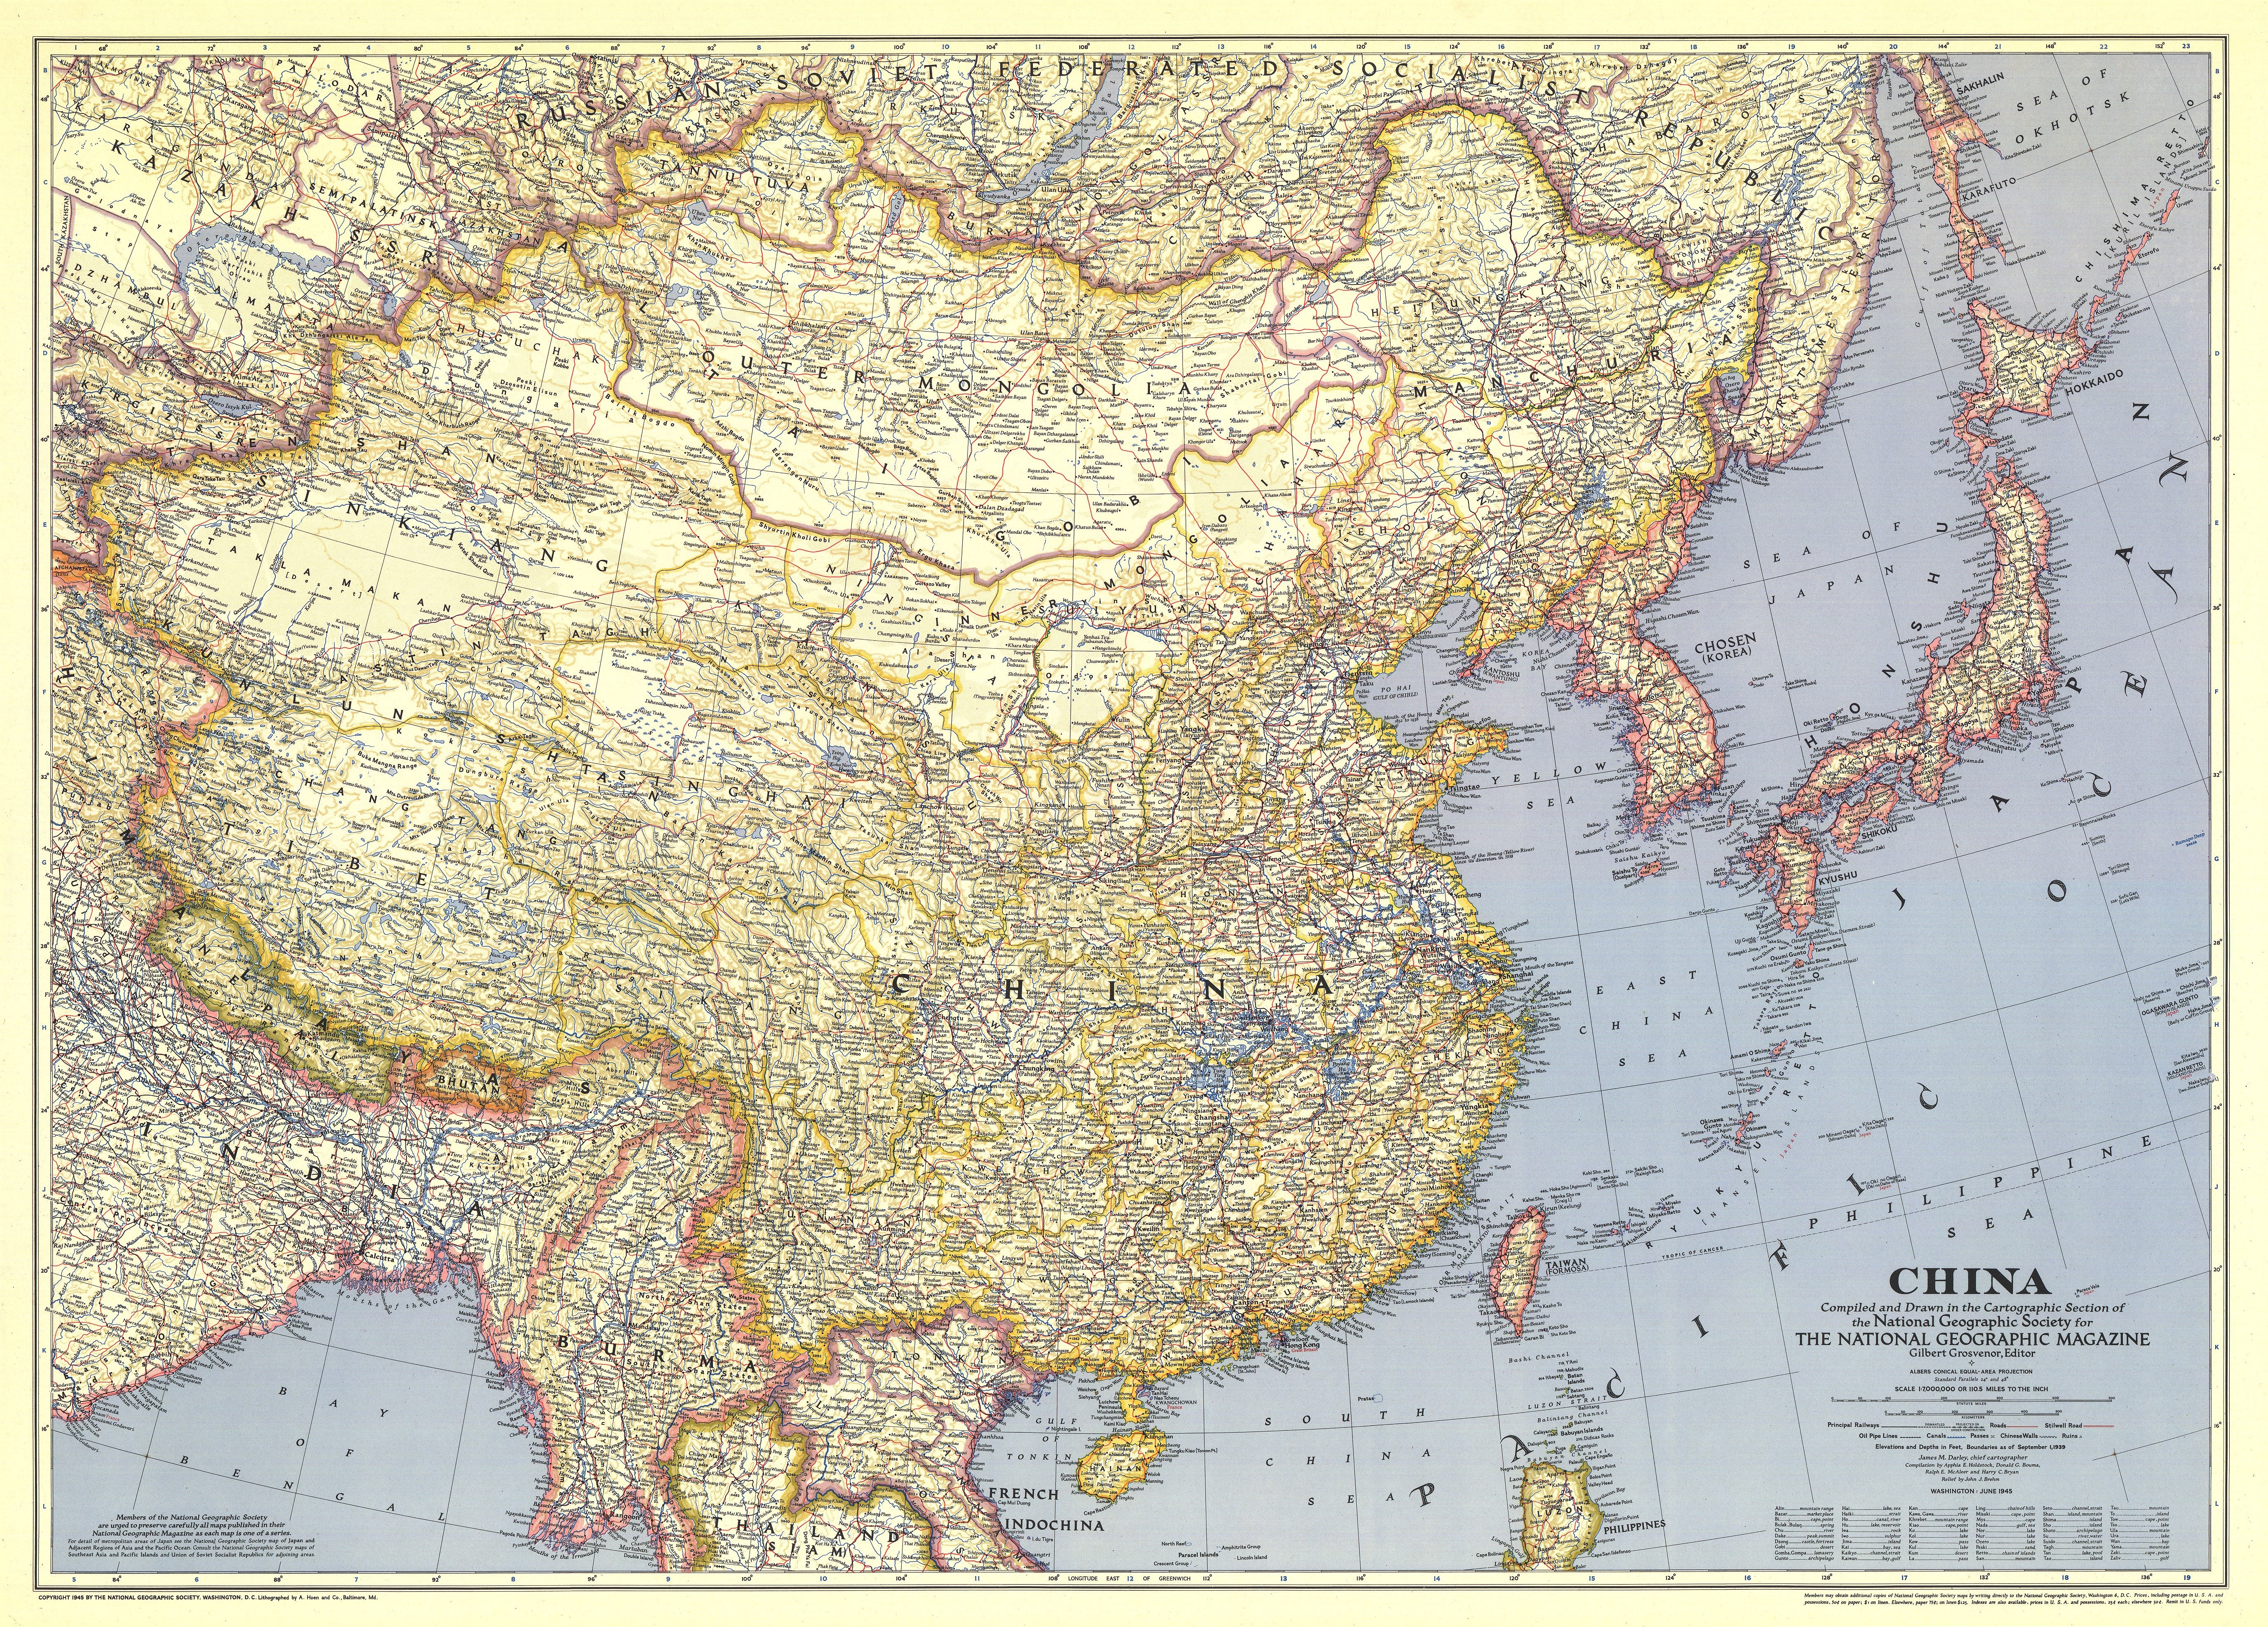 NGS 1945 China Map